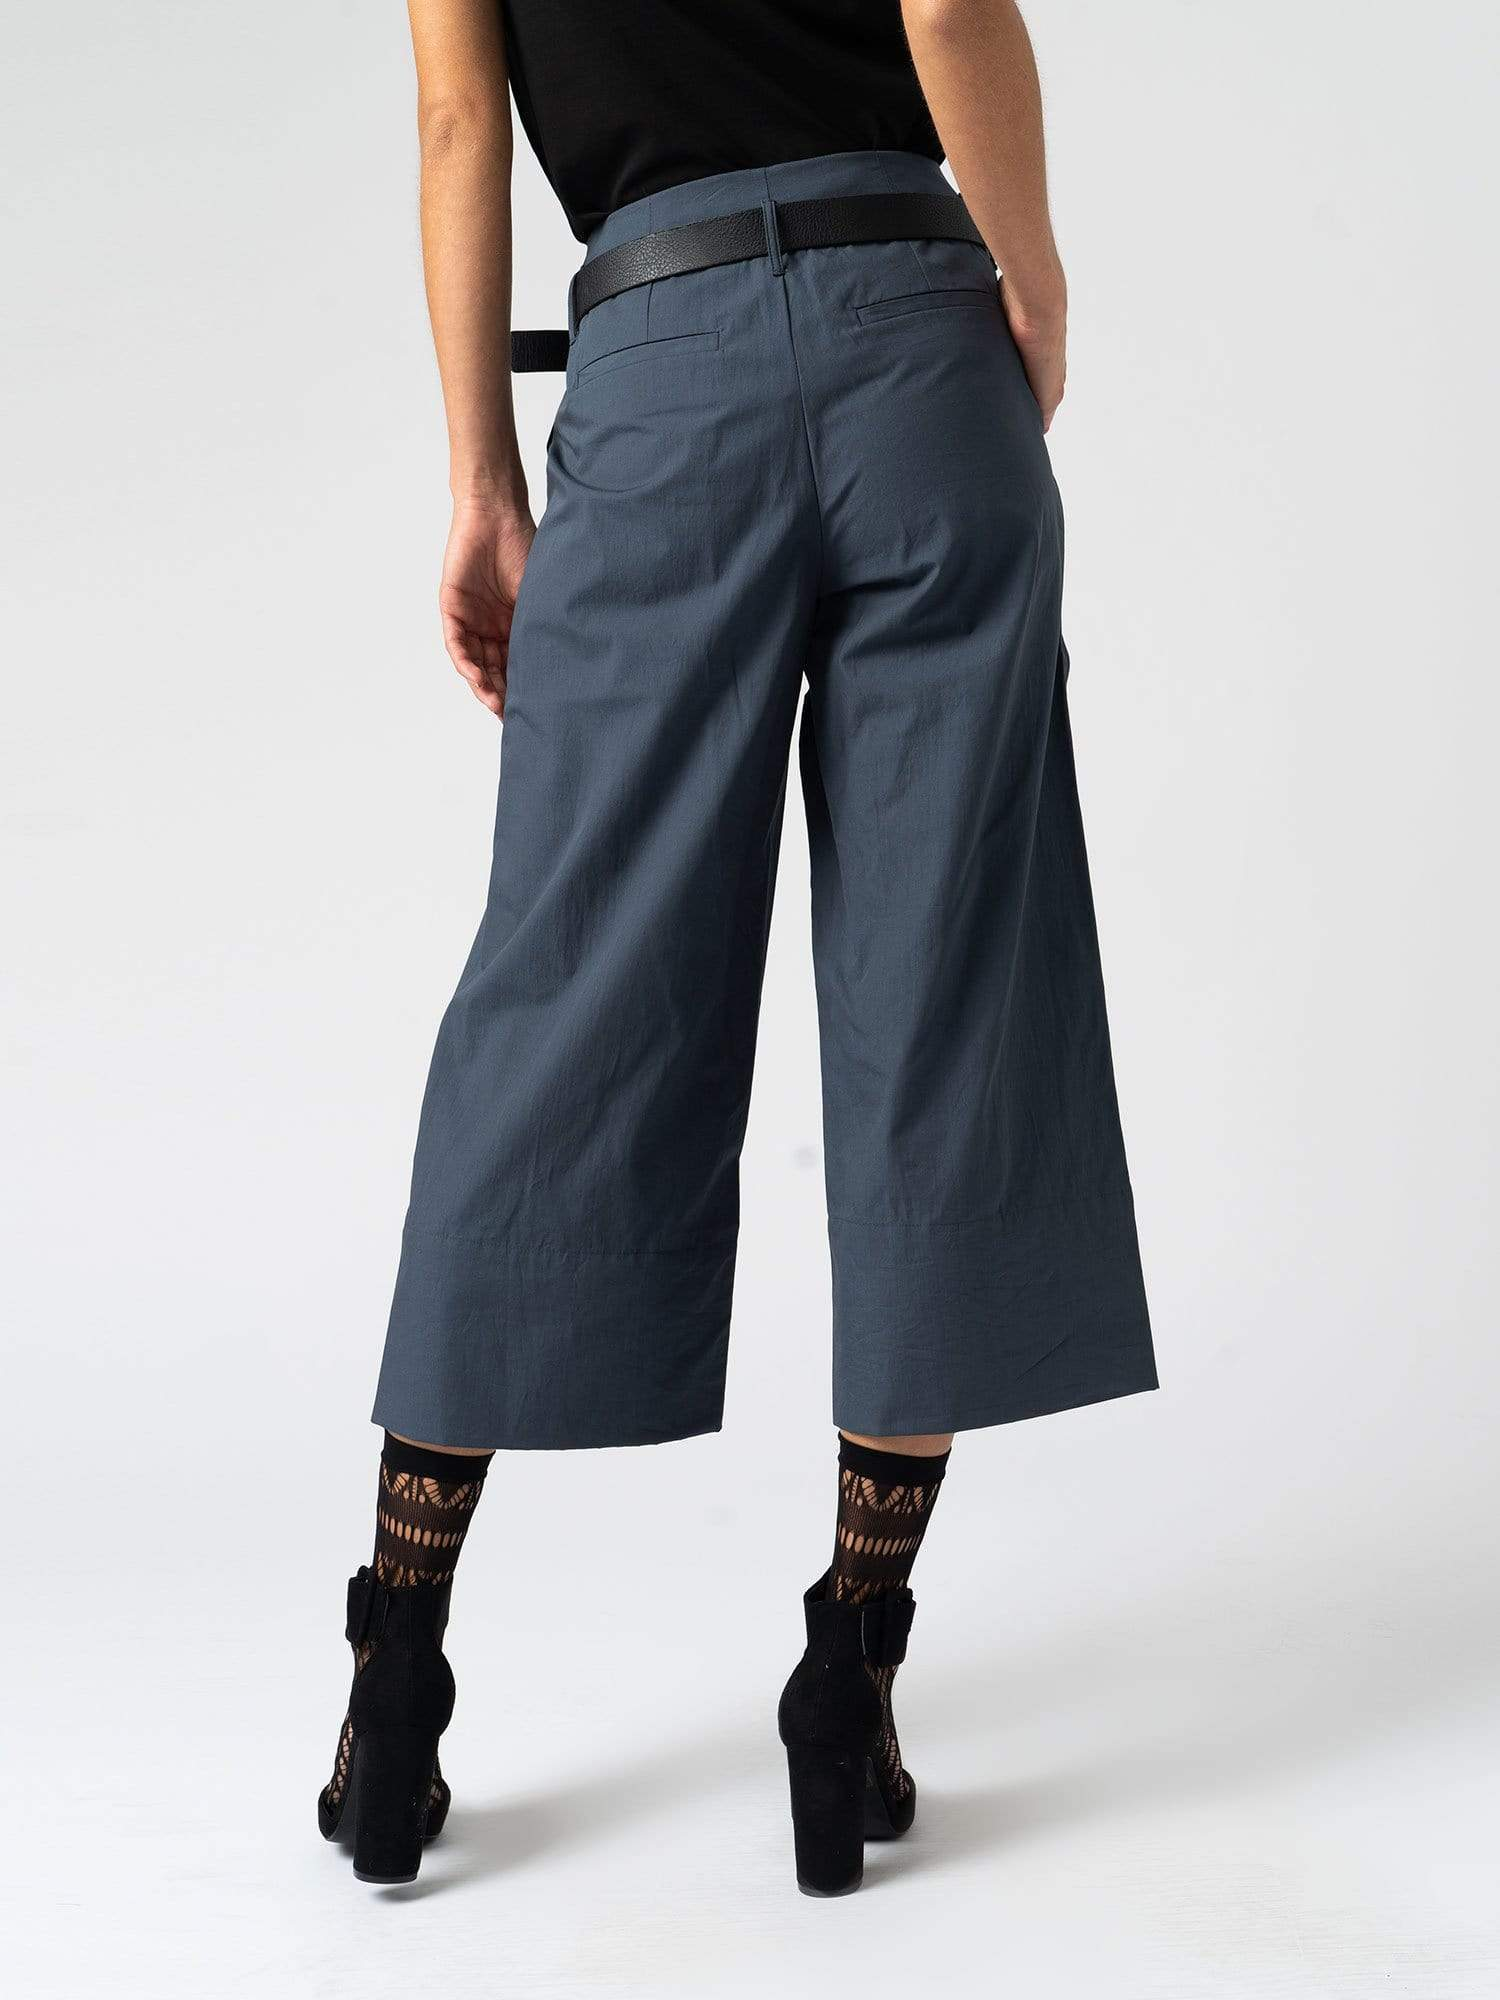 Pants The Shoreditch Culotte - Navy Zaggora UK